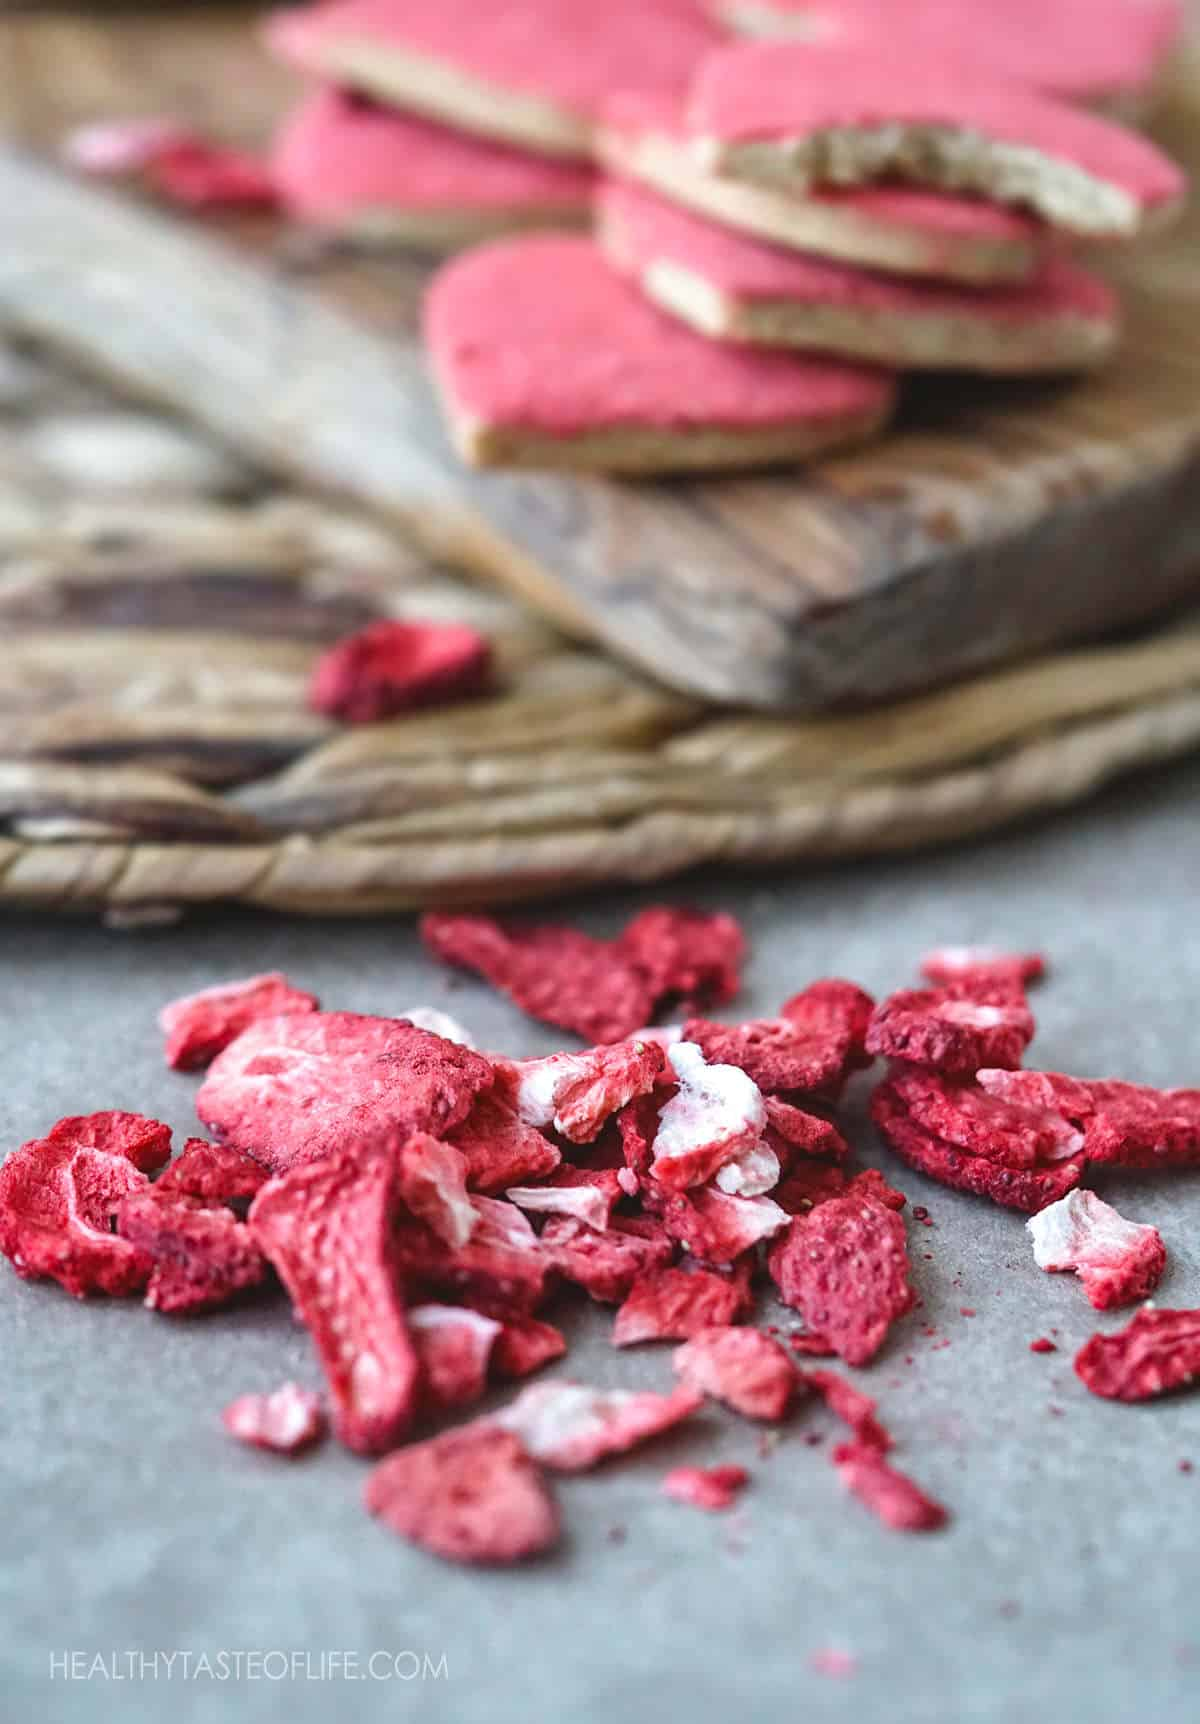 Looking for freeze dried strawberry recipes? Try these vegan gluten free cookies with freeze dried strawberries - heart shaped sugar cookies with strawberry flavor